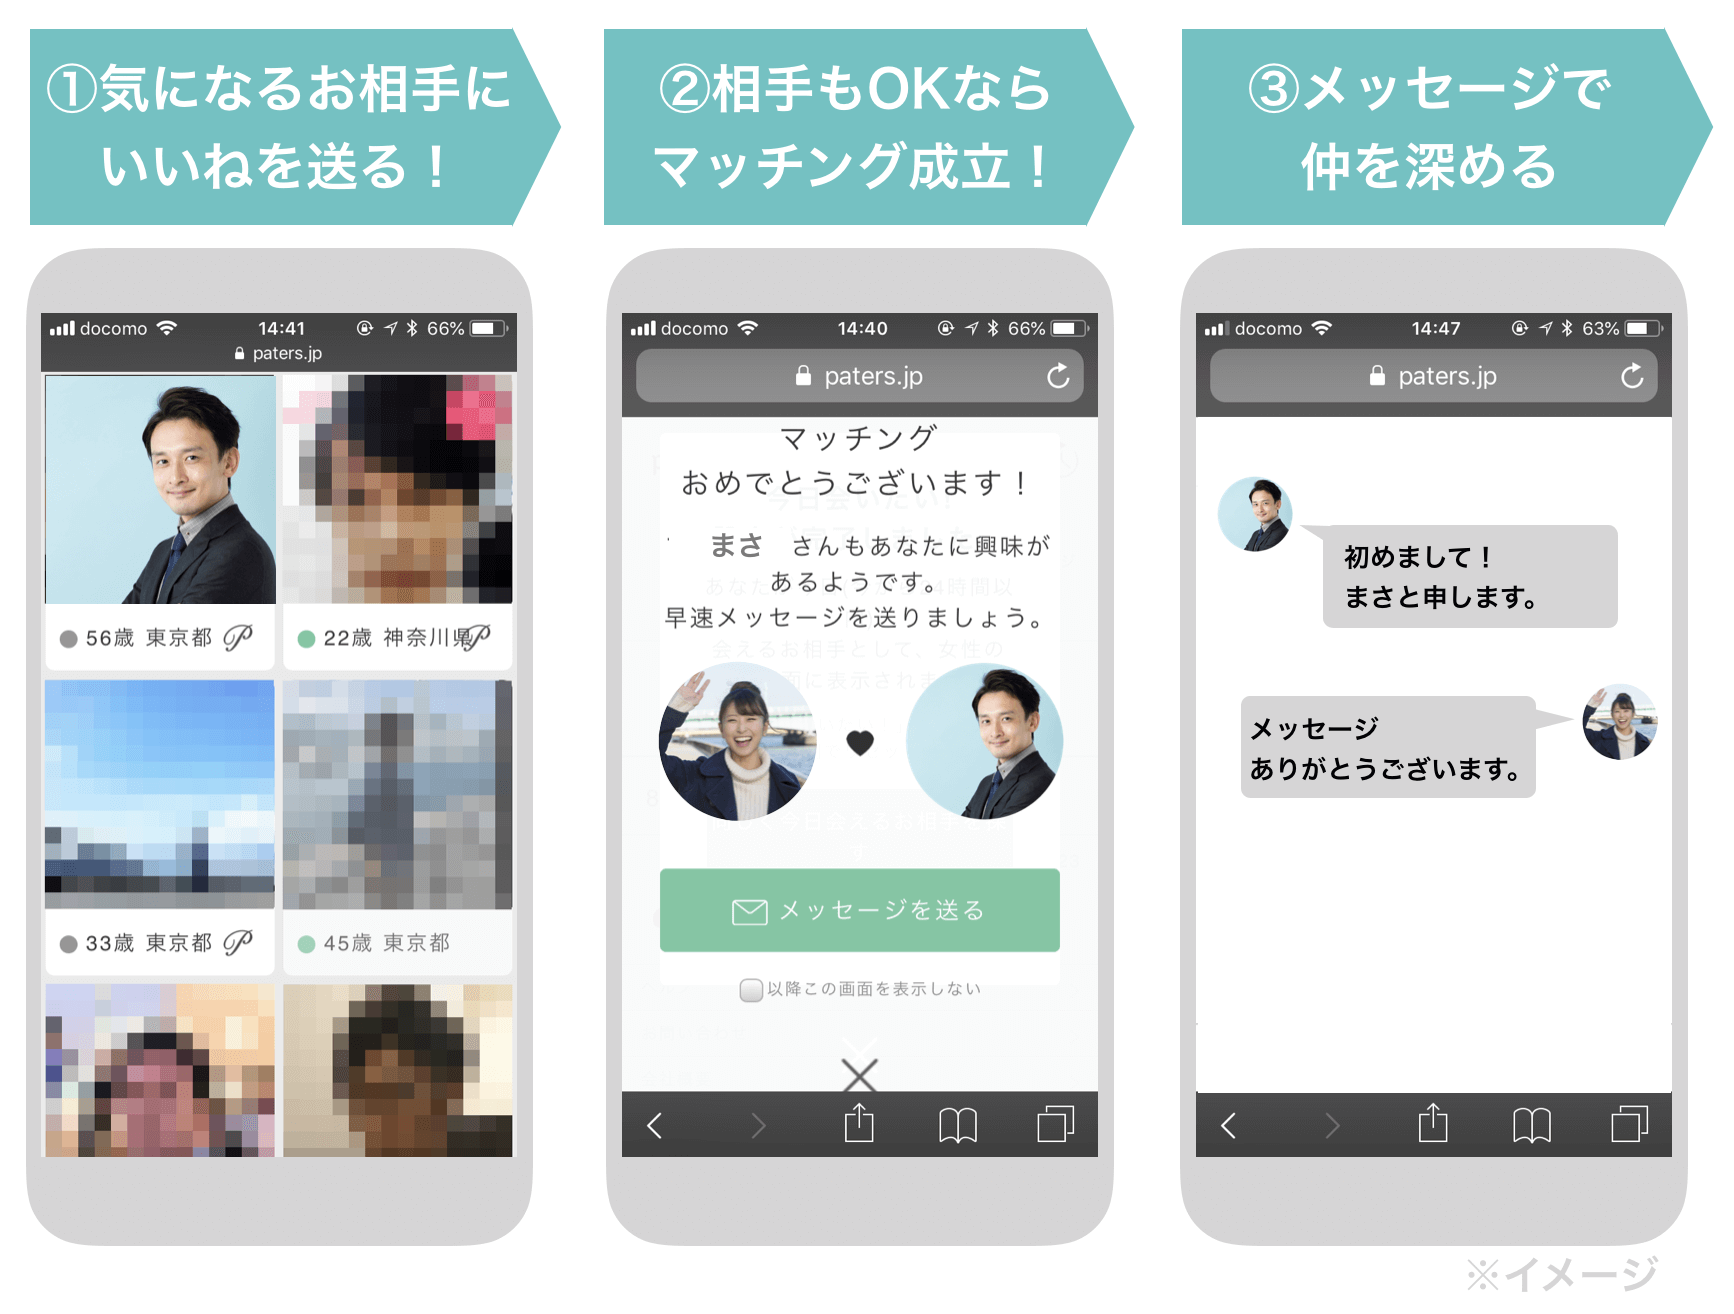 Paters利用イメージ